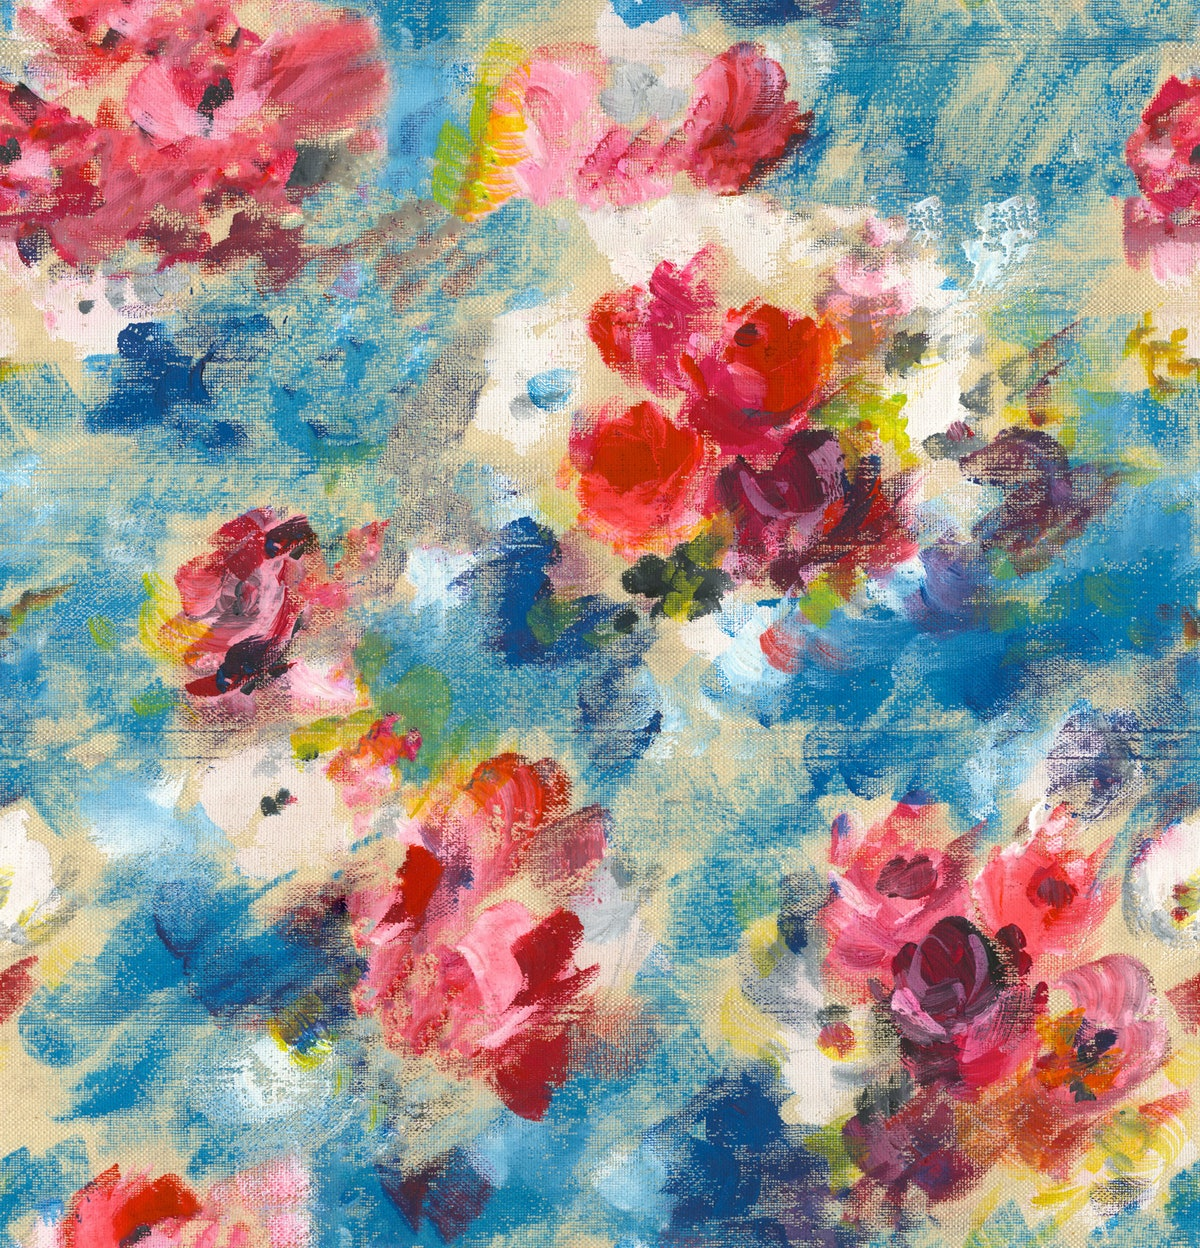 Band of Outsiders FW14 Painted Flower print